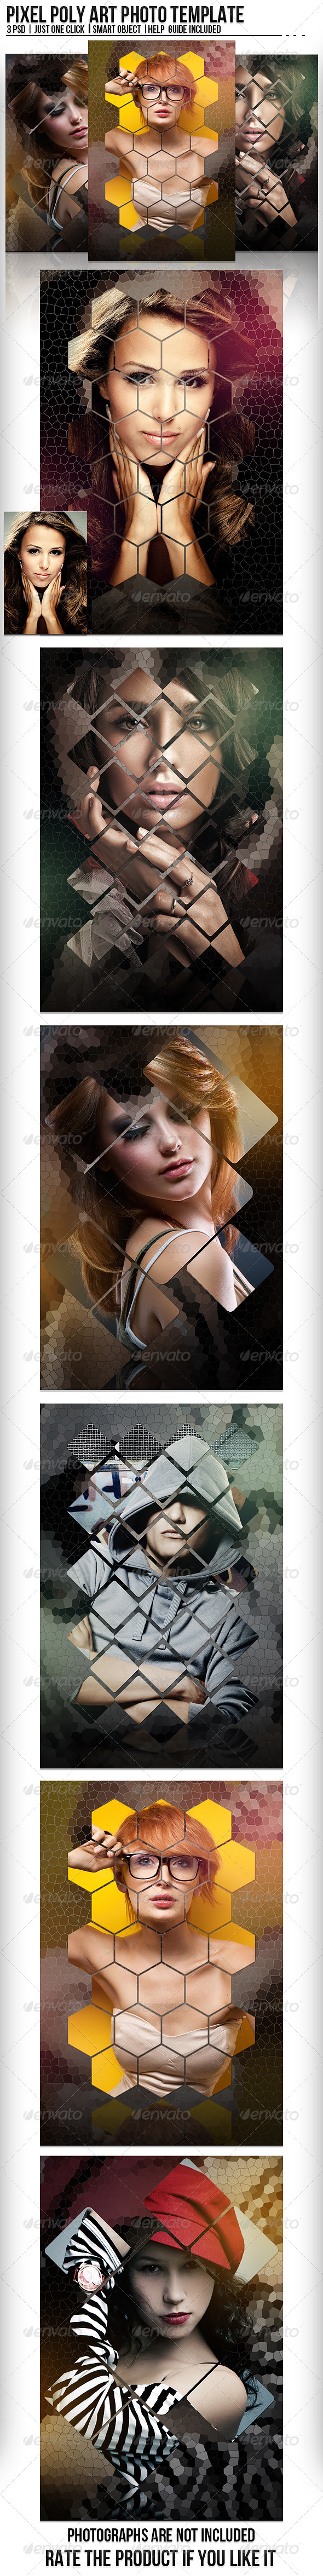 Pixel Poly Art Photo Template - Artistic Photo Templates